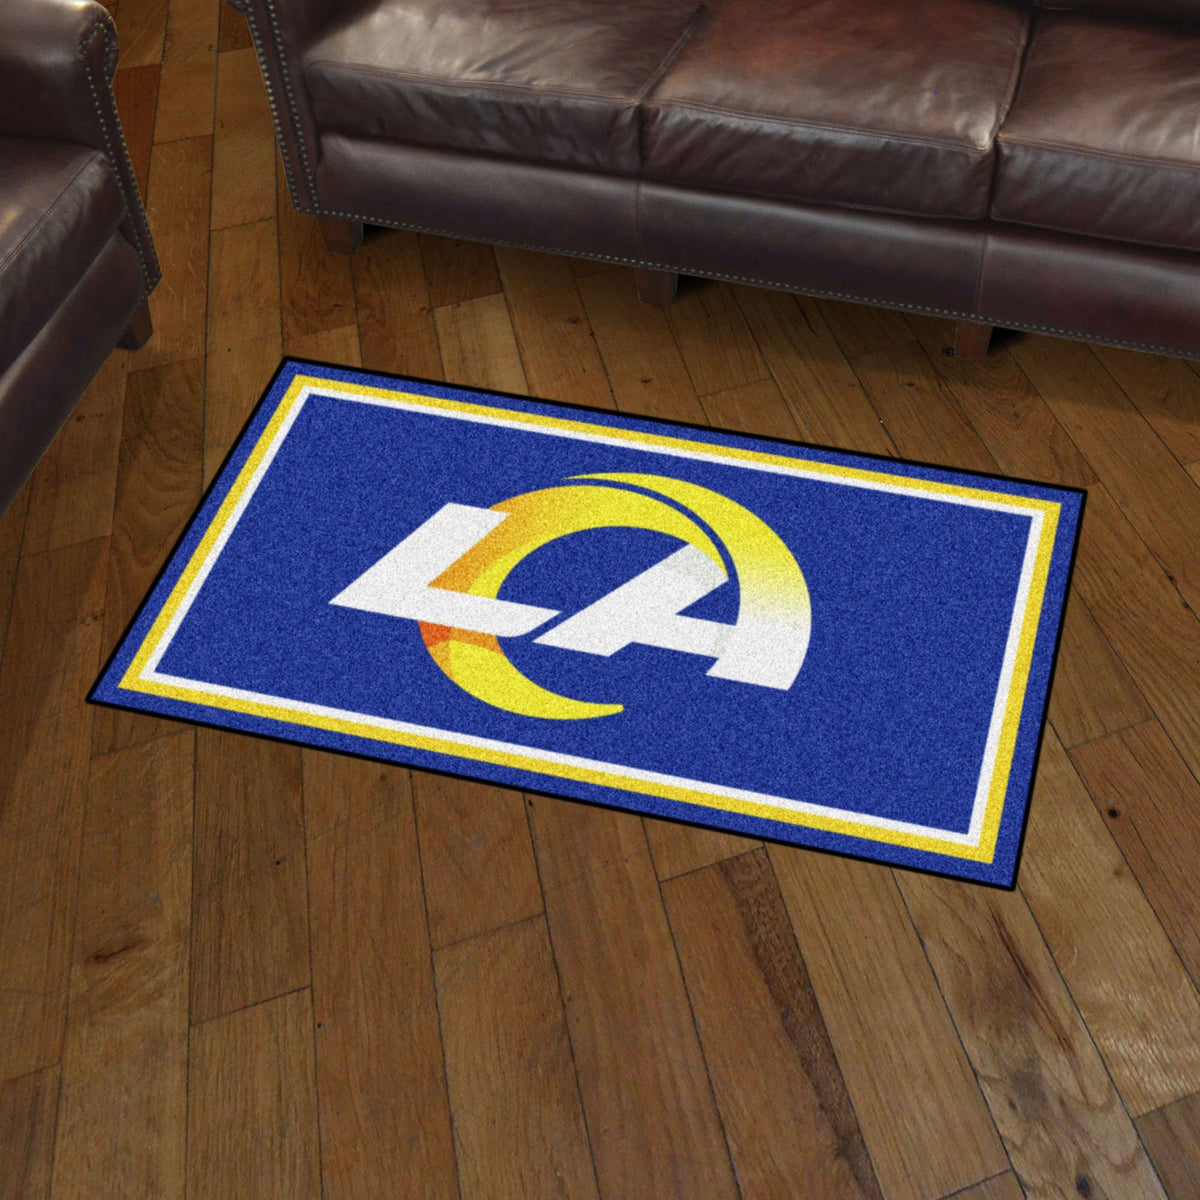 NFL - 3' x 5' Rug NFL Mats, Plush Rugs, 3x5 Rug, NFL, Home Fan Mats Los Angeles Rams